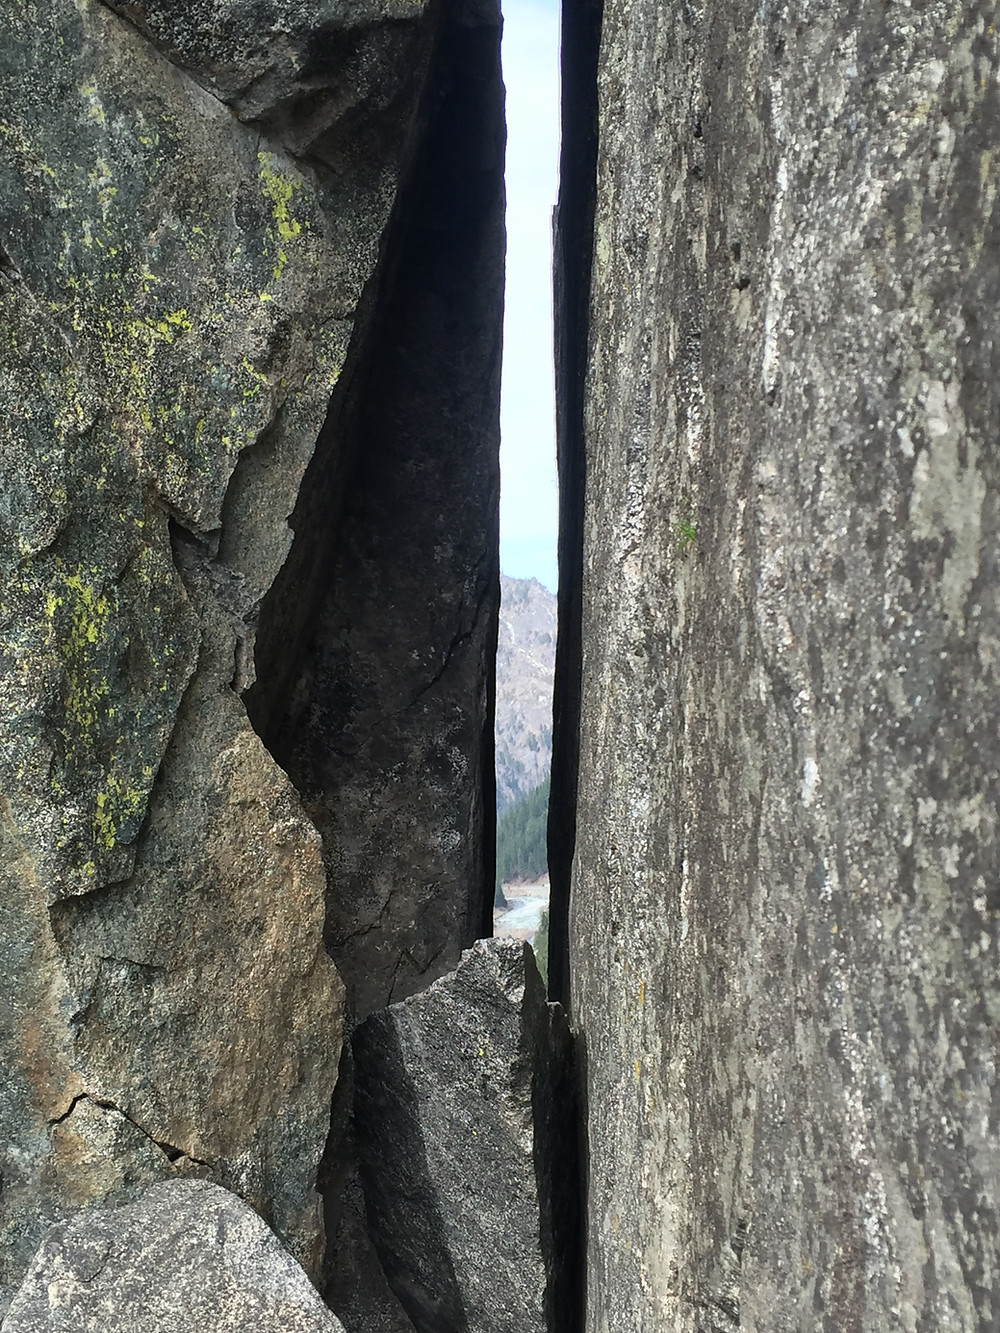 Damnation Chimney at Jello Tower in Leavenworth, Washington is impossibly tall, incredibly narrow, a clearing sandwiched between two enormous grey hunks of rock. Leavenworth, Washington